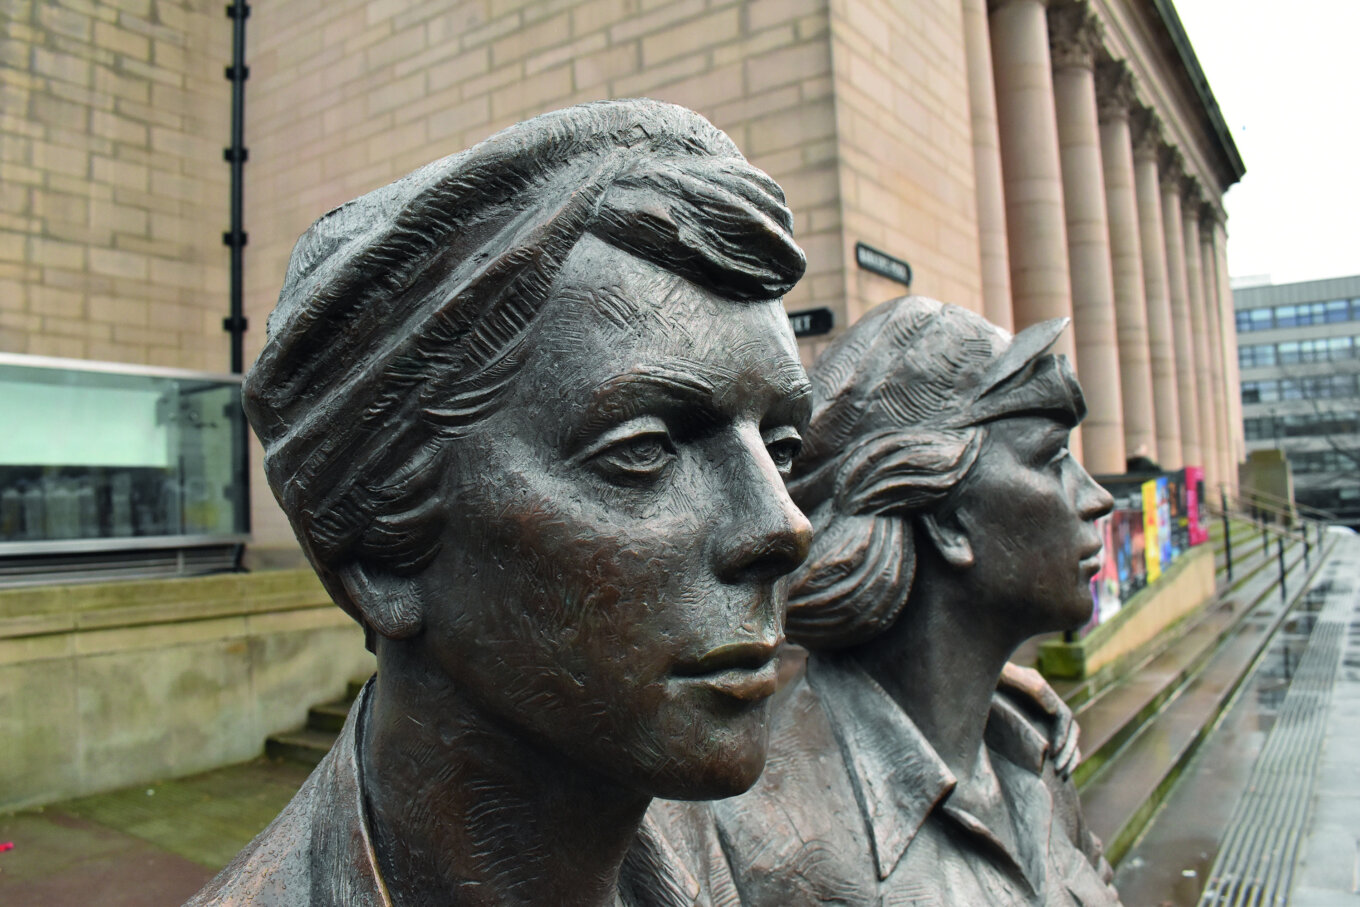 Women of Steel statue by Martin Jennings no photo credit required